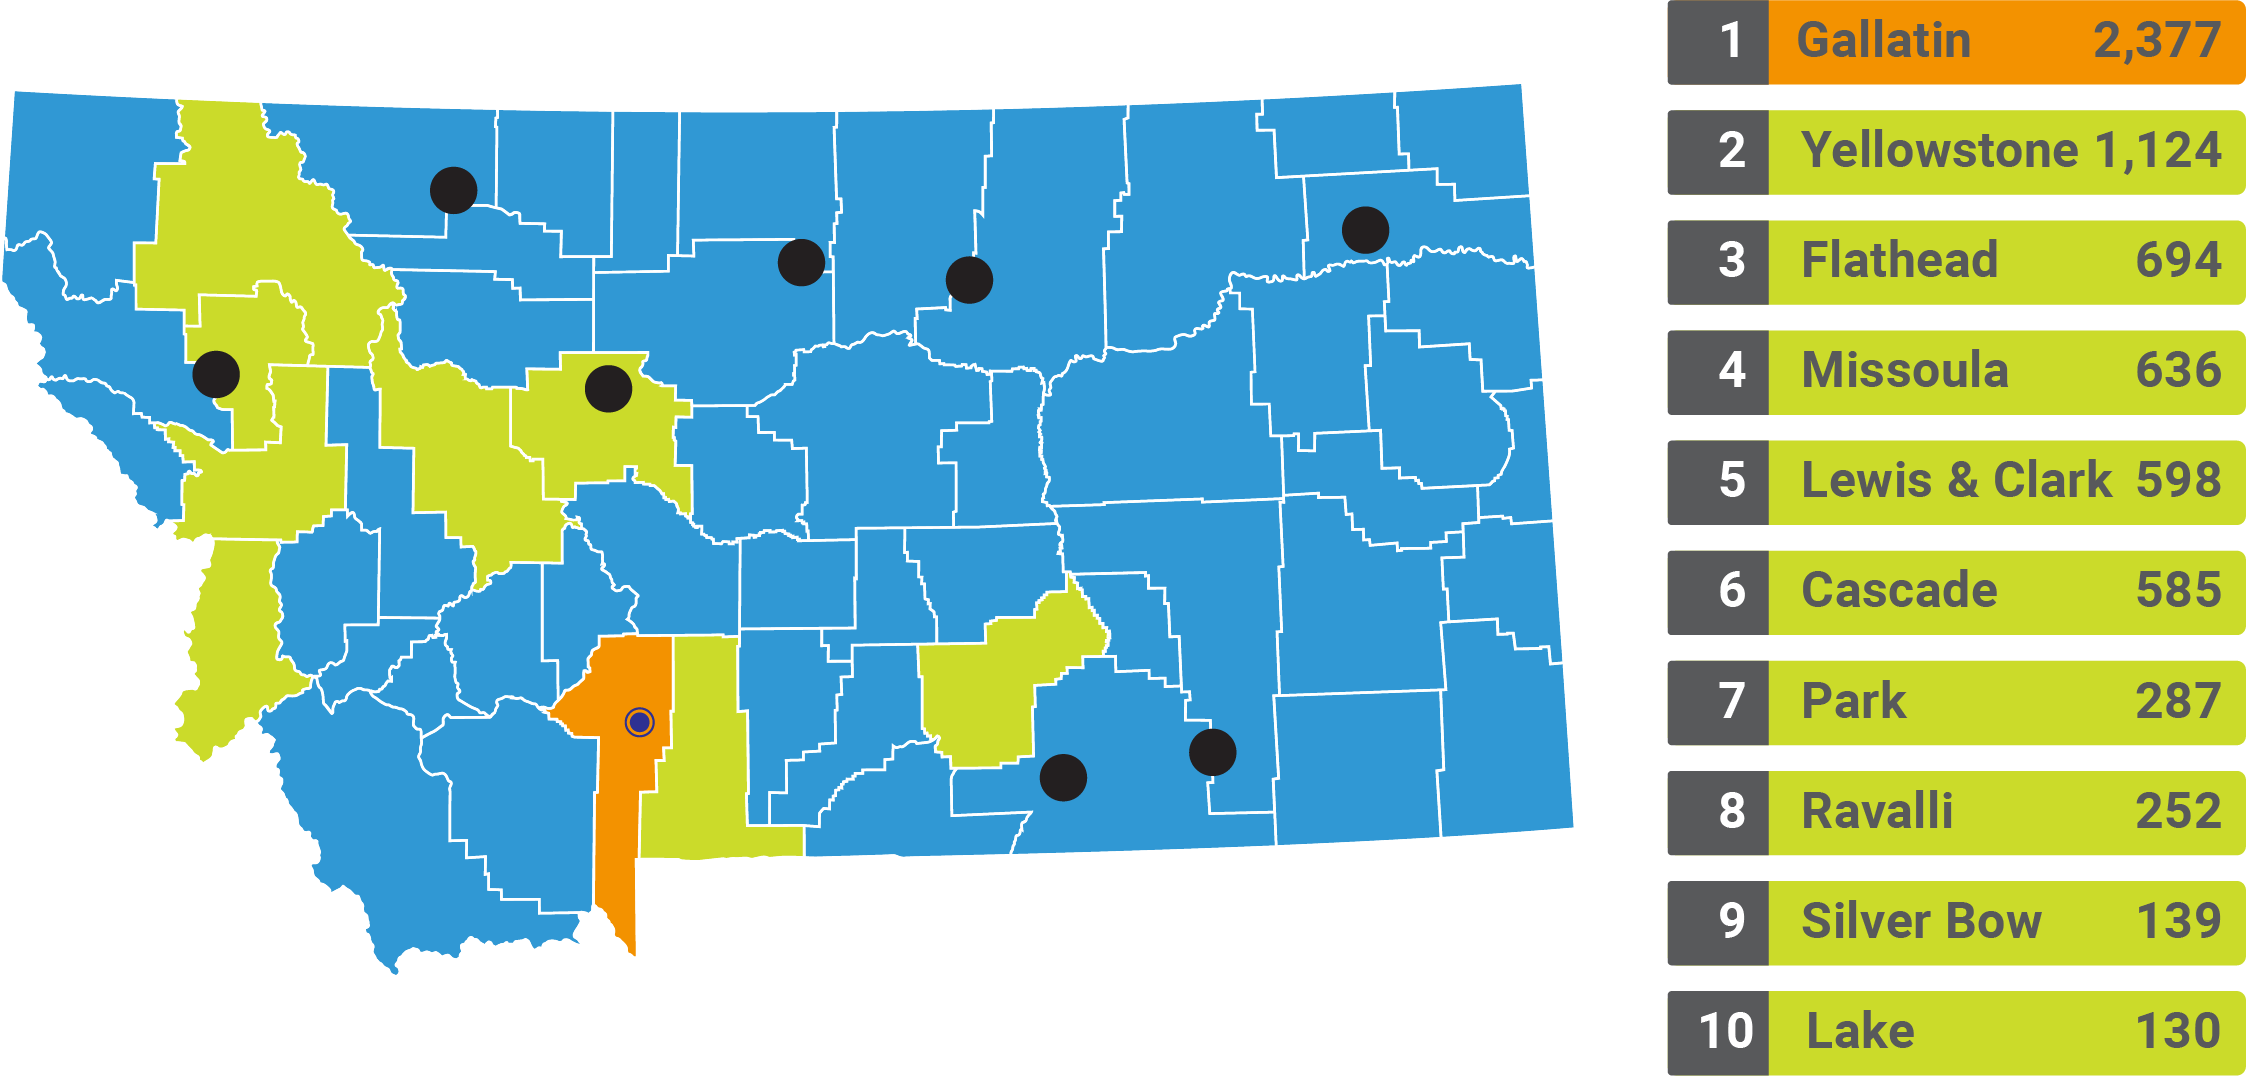 Graphic of the state of Montana showing that MSU students come from 54 out of 56 Montana counties and all 8 Montna Tribal nations with the top 10 counties being Gallatin (2,377), Yellowstone (1,124), Flathead (694), Missoula (636), Lewis and Clark (598), Cascade (585), Park (287), Ravalli (252), Silver Bow (139) and Lake (130).